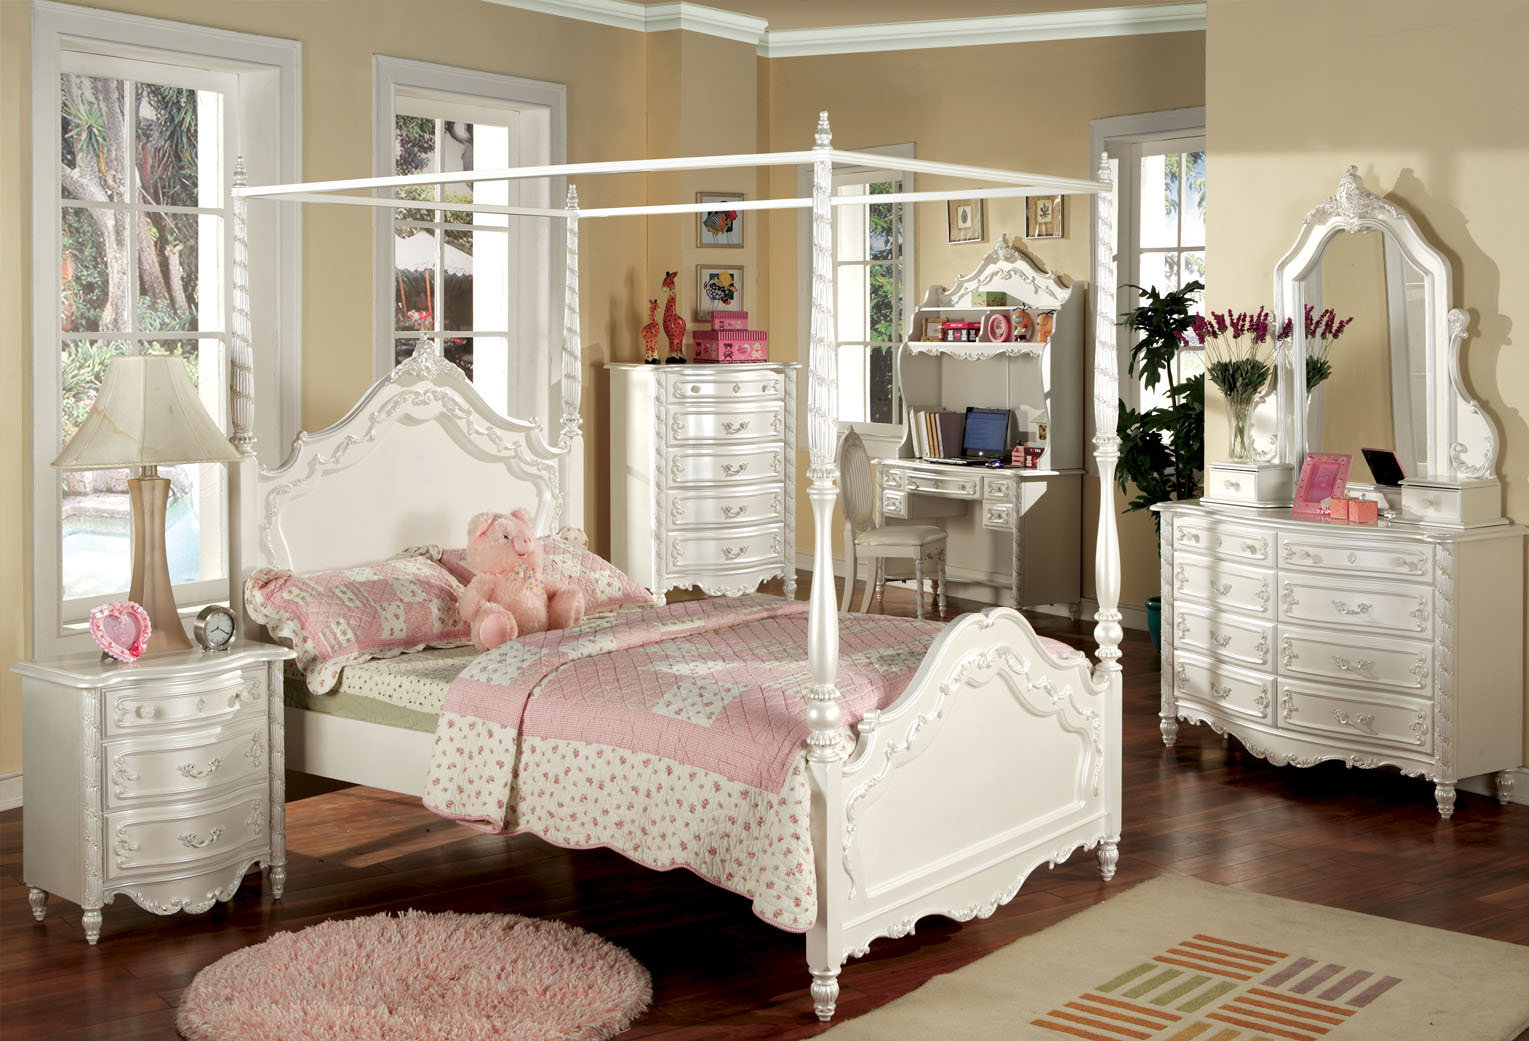 Amazing The Perle de Culture Childrenu0027s Canopy Bed Set - Youth Bedroom Furniture. white childrens bedroom furniture